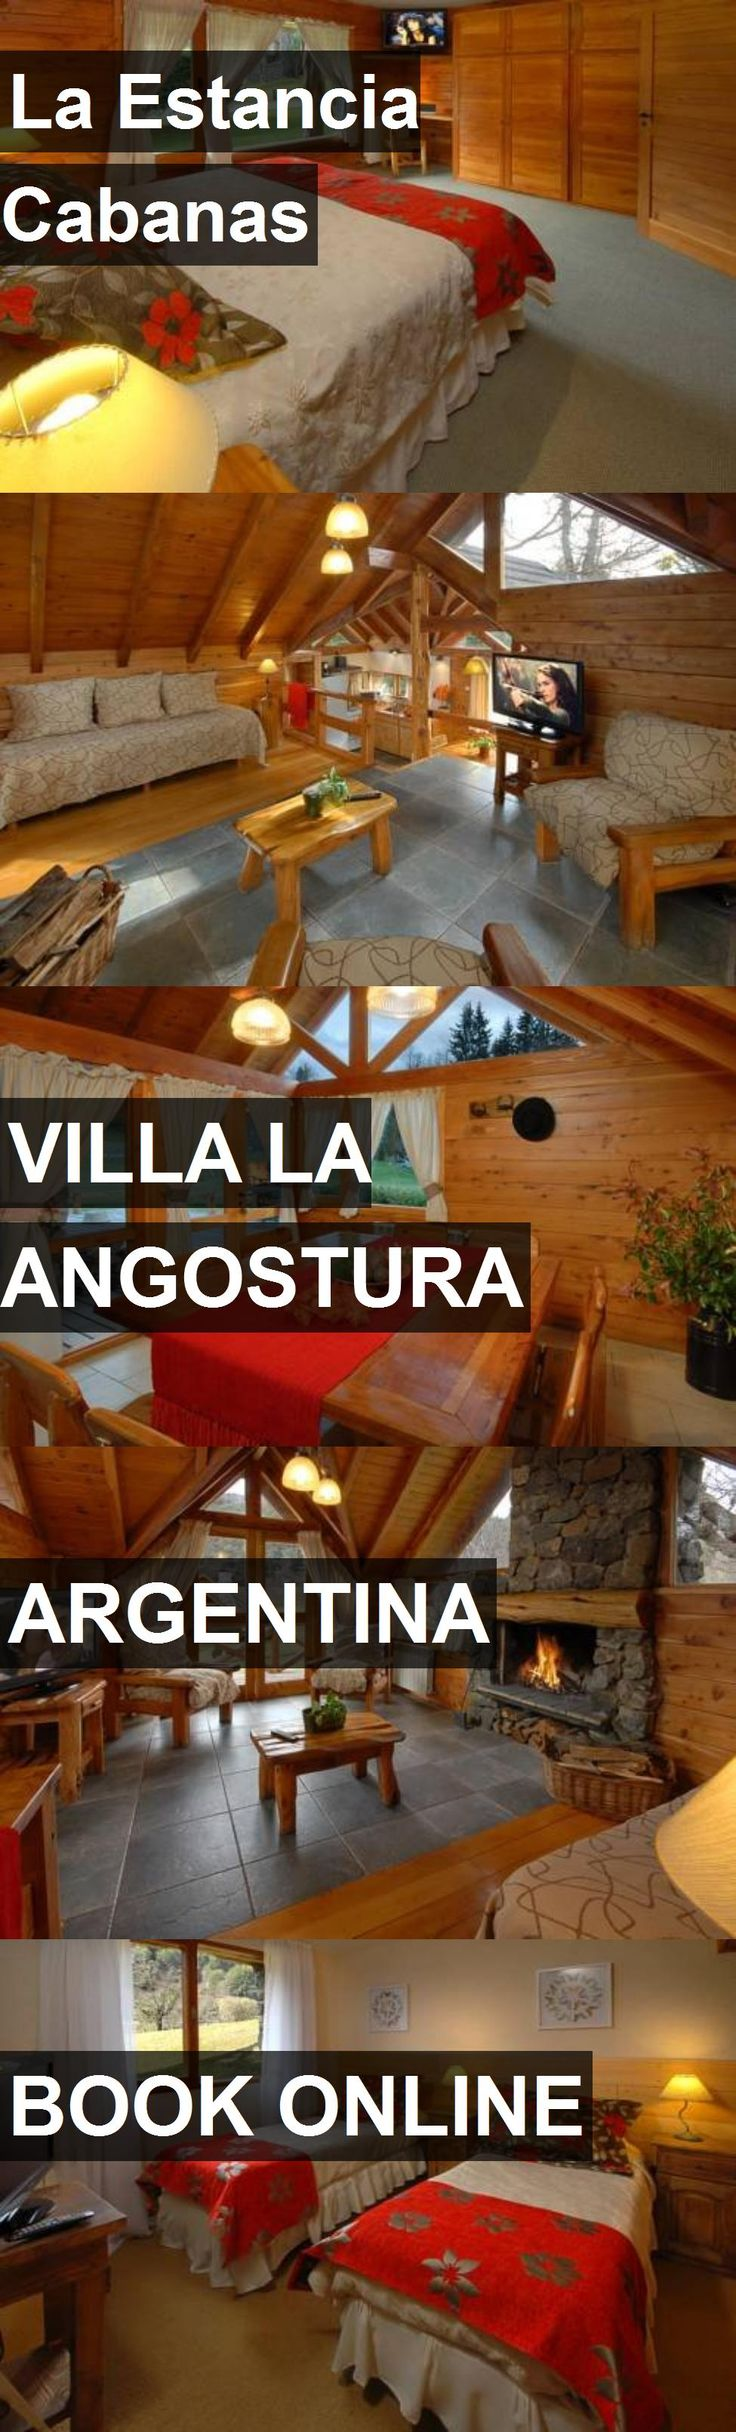 Hotel La Estancia Cabanas in Villa la Angostura, Argentina. For more information, photos, reviews and best prices please follow the link. #Argentina #VillalaAngostura #LaEstanciaCabanas #hotel #travel #vacation